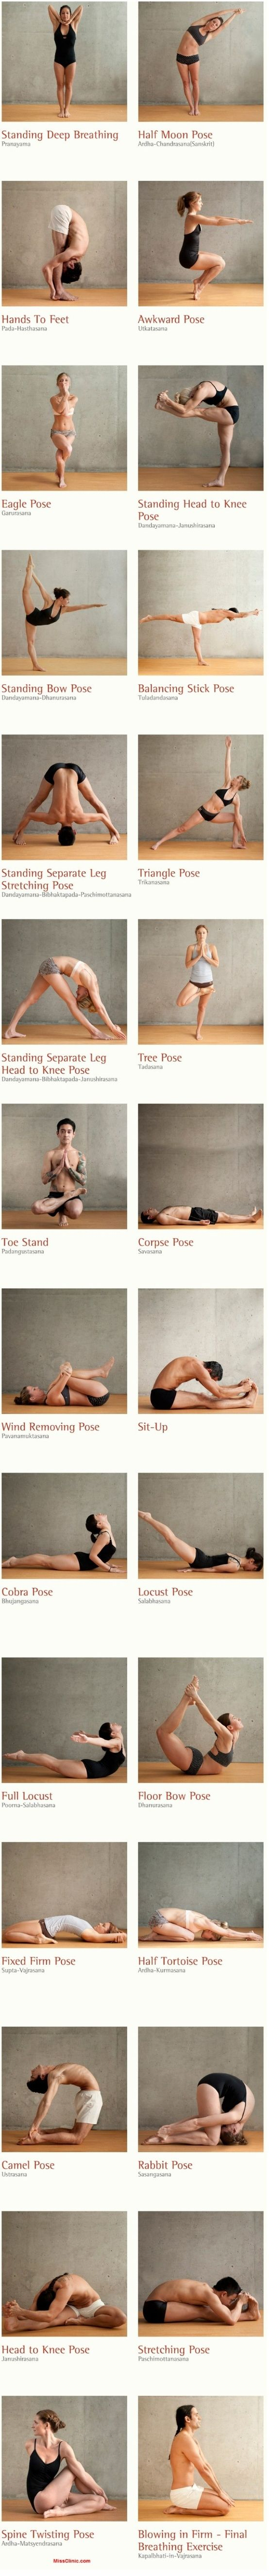 BIKRAM. 26 POSTURES! Consisting of 26 postures and 2 breathing exercises, Bikram Yoga positions focuses on 100% of the human body, working from the inside out. The 26 Bikram yoga poses invigorate by stimulating the organs, glands, and nerves; each pose helping to move fresh oxygen through the body.